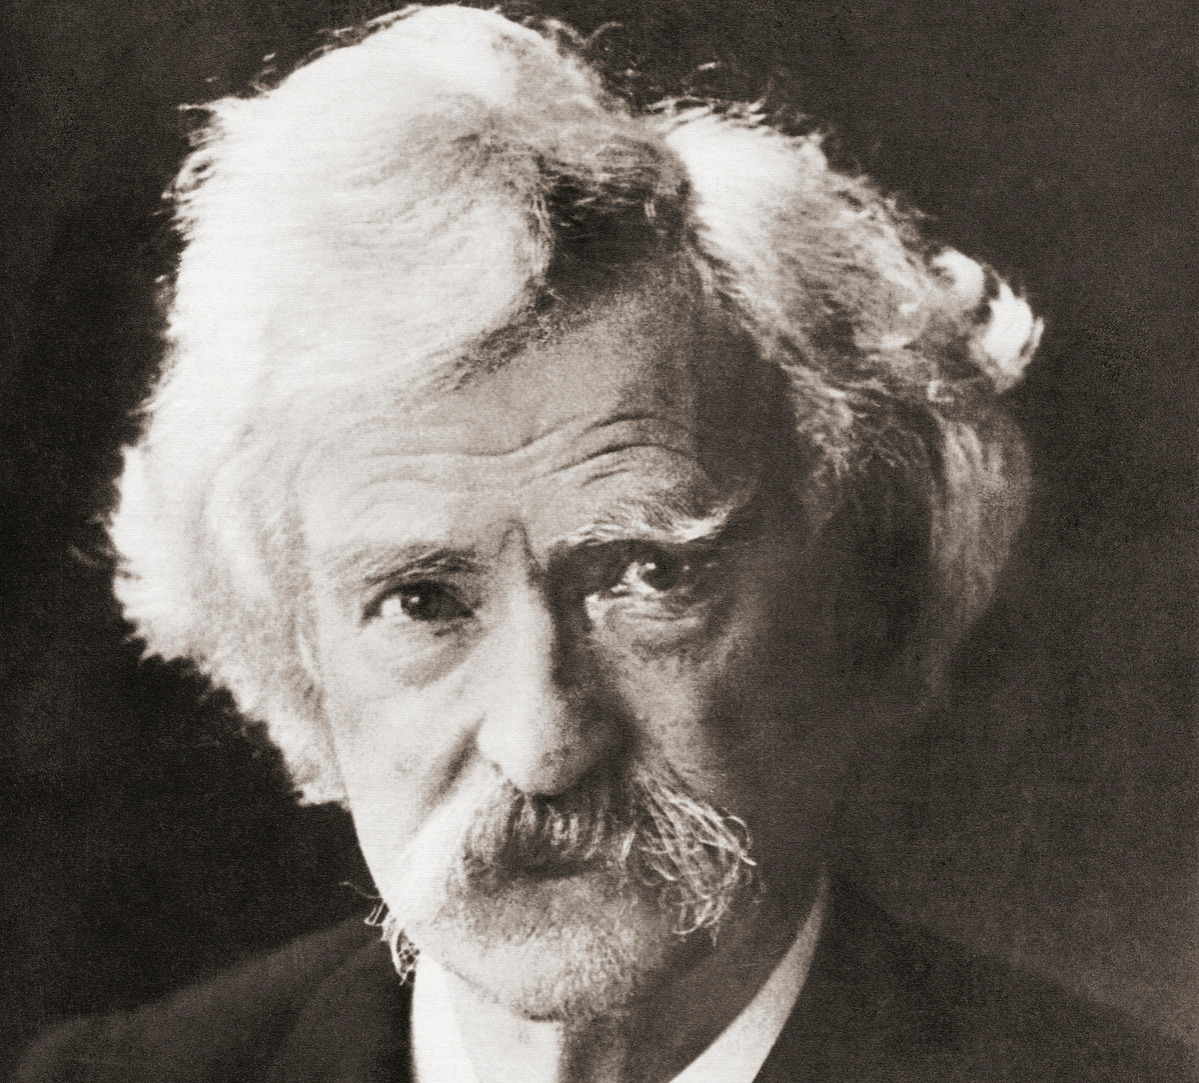 amuel Langhorne Clemens, 1835 -1910, better known by his pen name Mark Twain